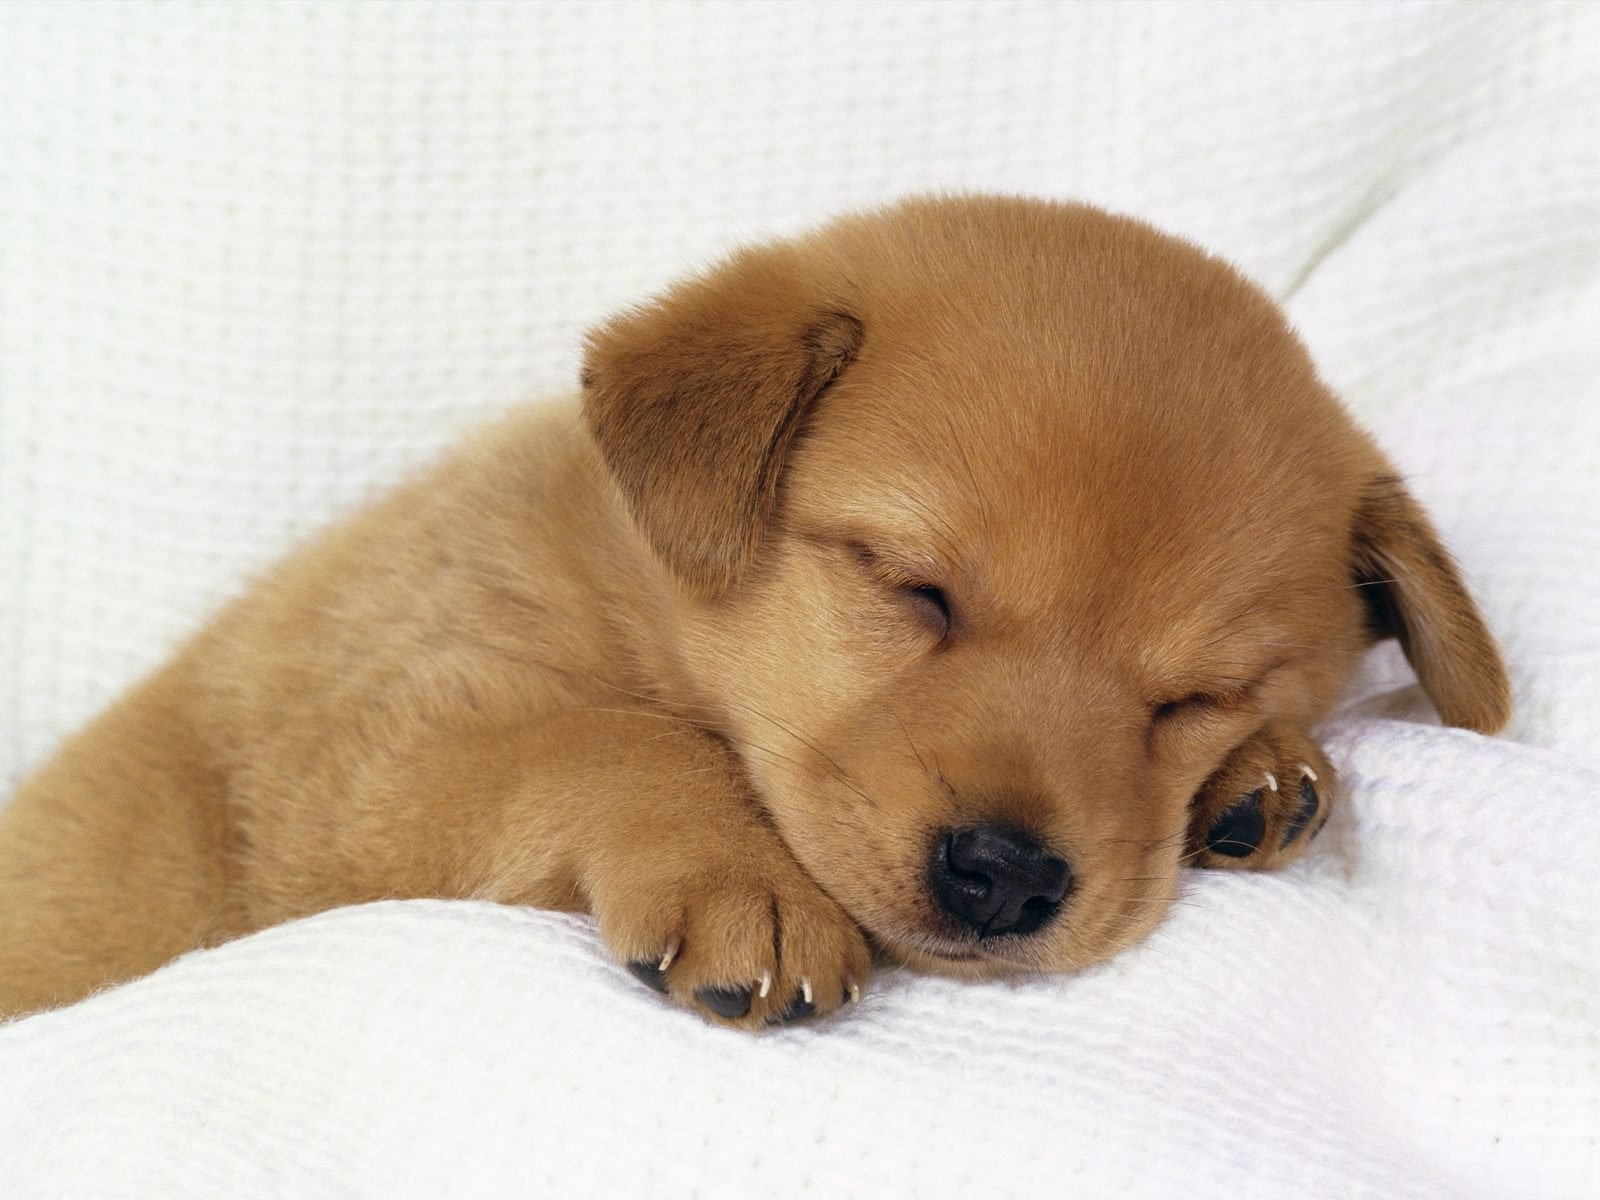 Cute baby dog sleeping 1600×1200